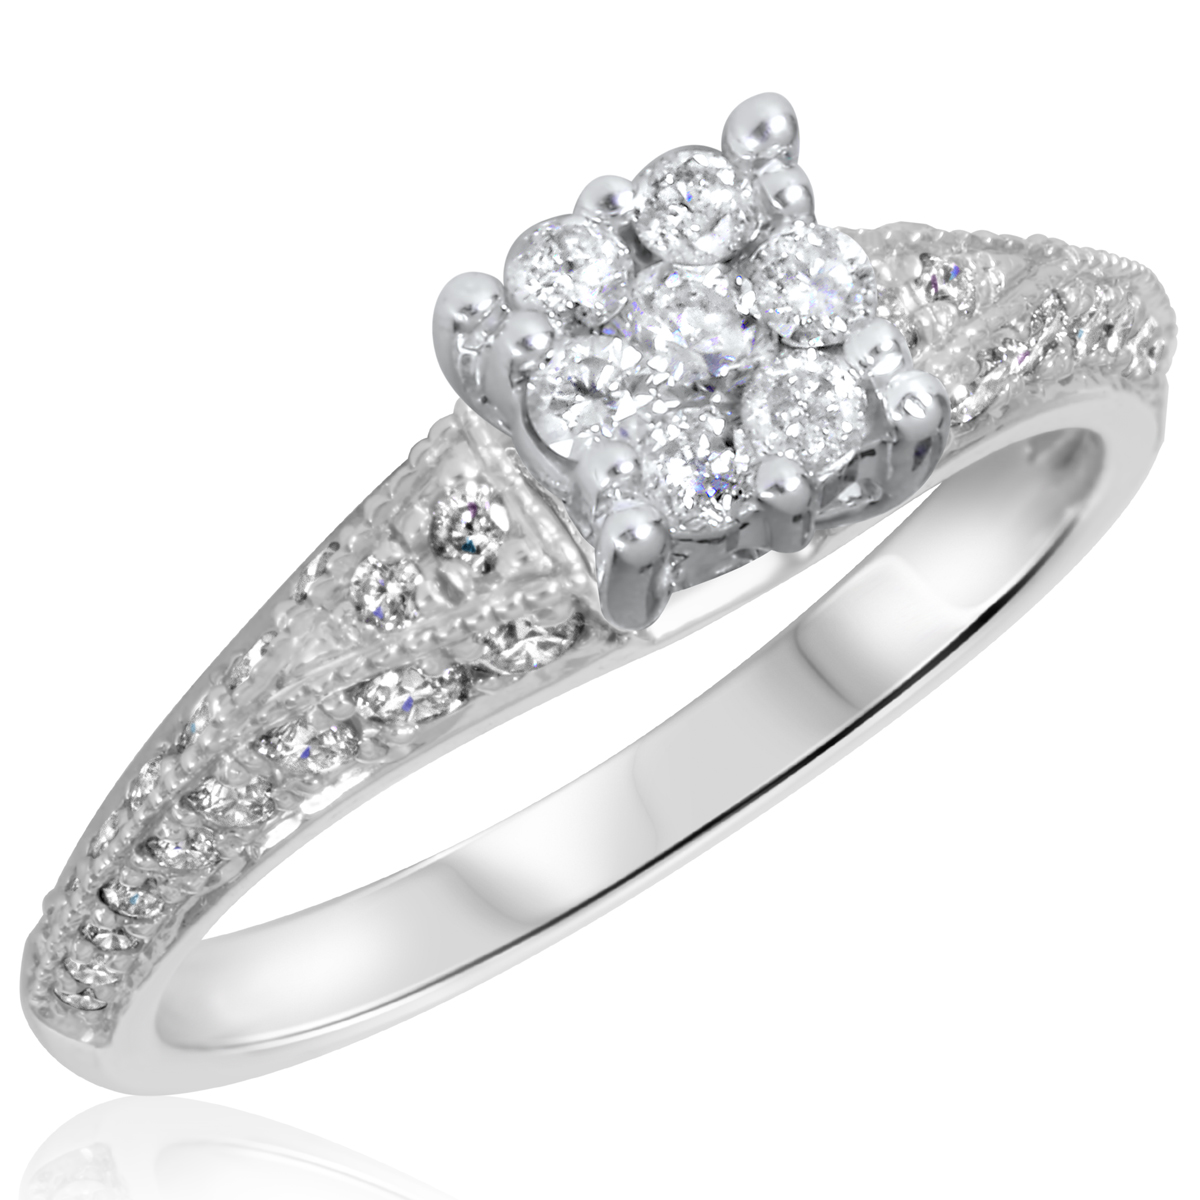 3/4 CT. T.W. Diamond Ladies Engagement Ring 10K White Gold- Size 8